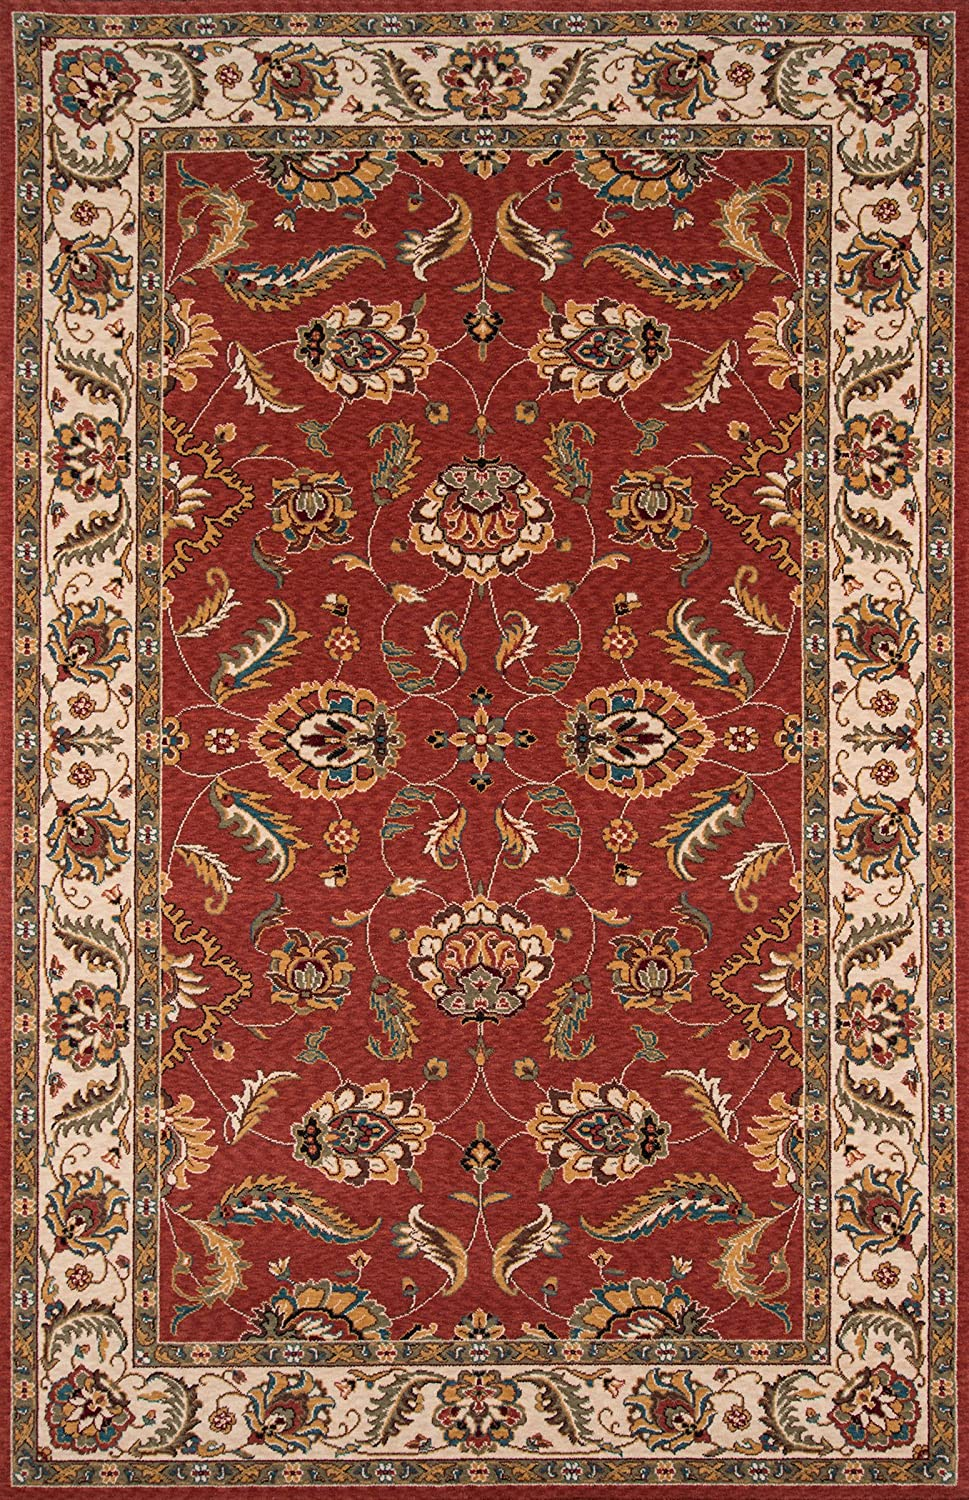 Momeni Rugs Persian Garden Collection, 100% New Zealand Wool Traditional Area Rug, 2' x 3', Salmon Red